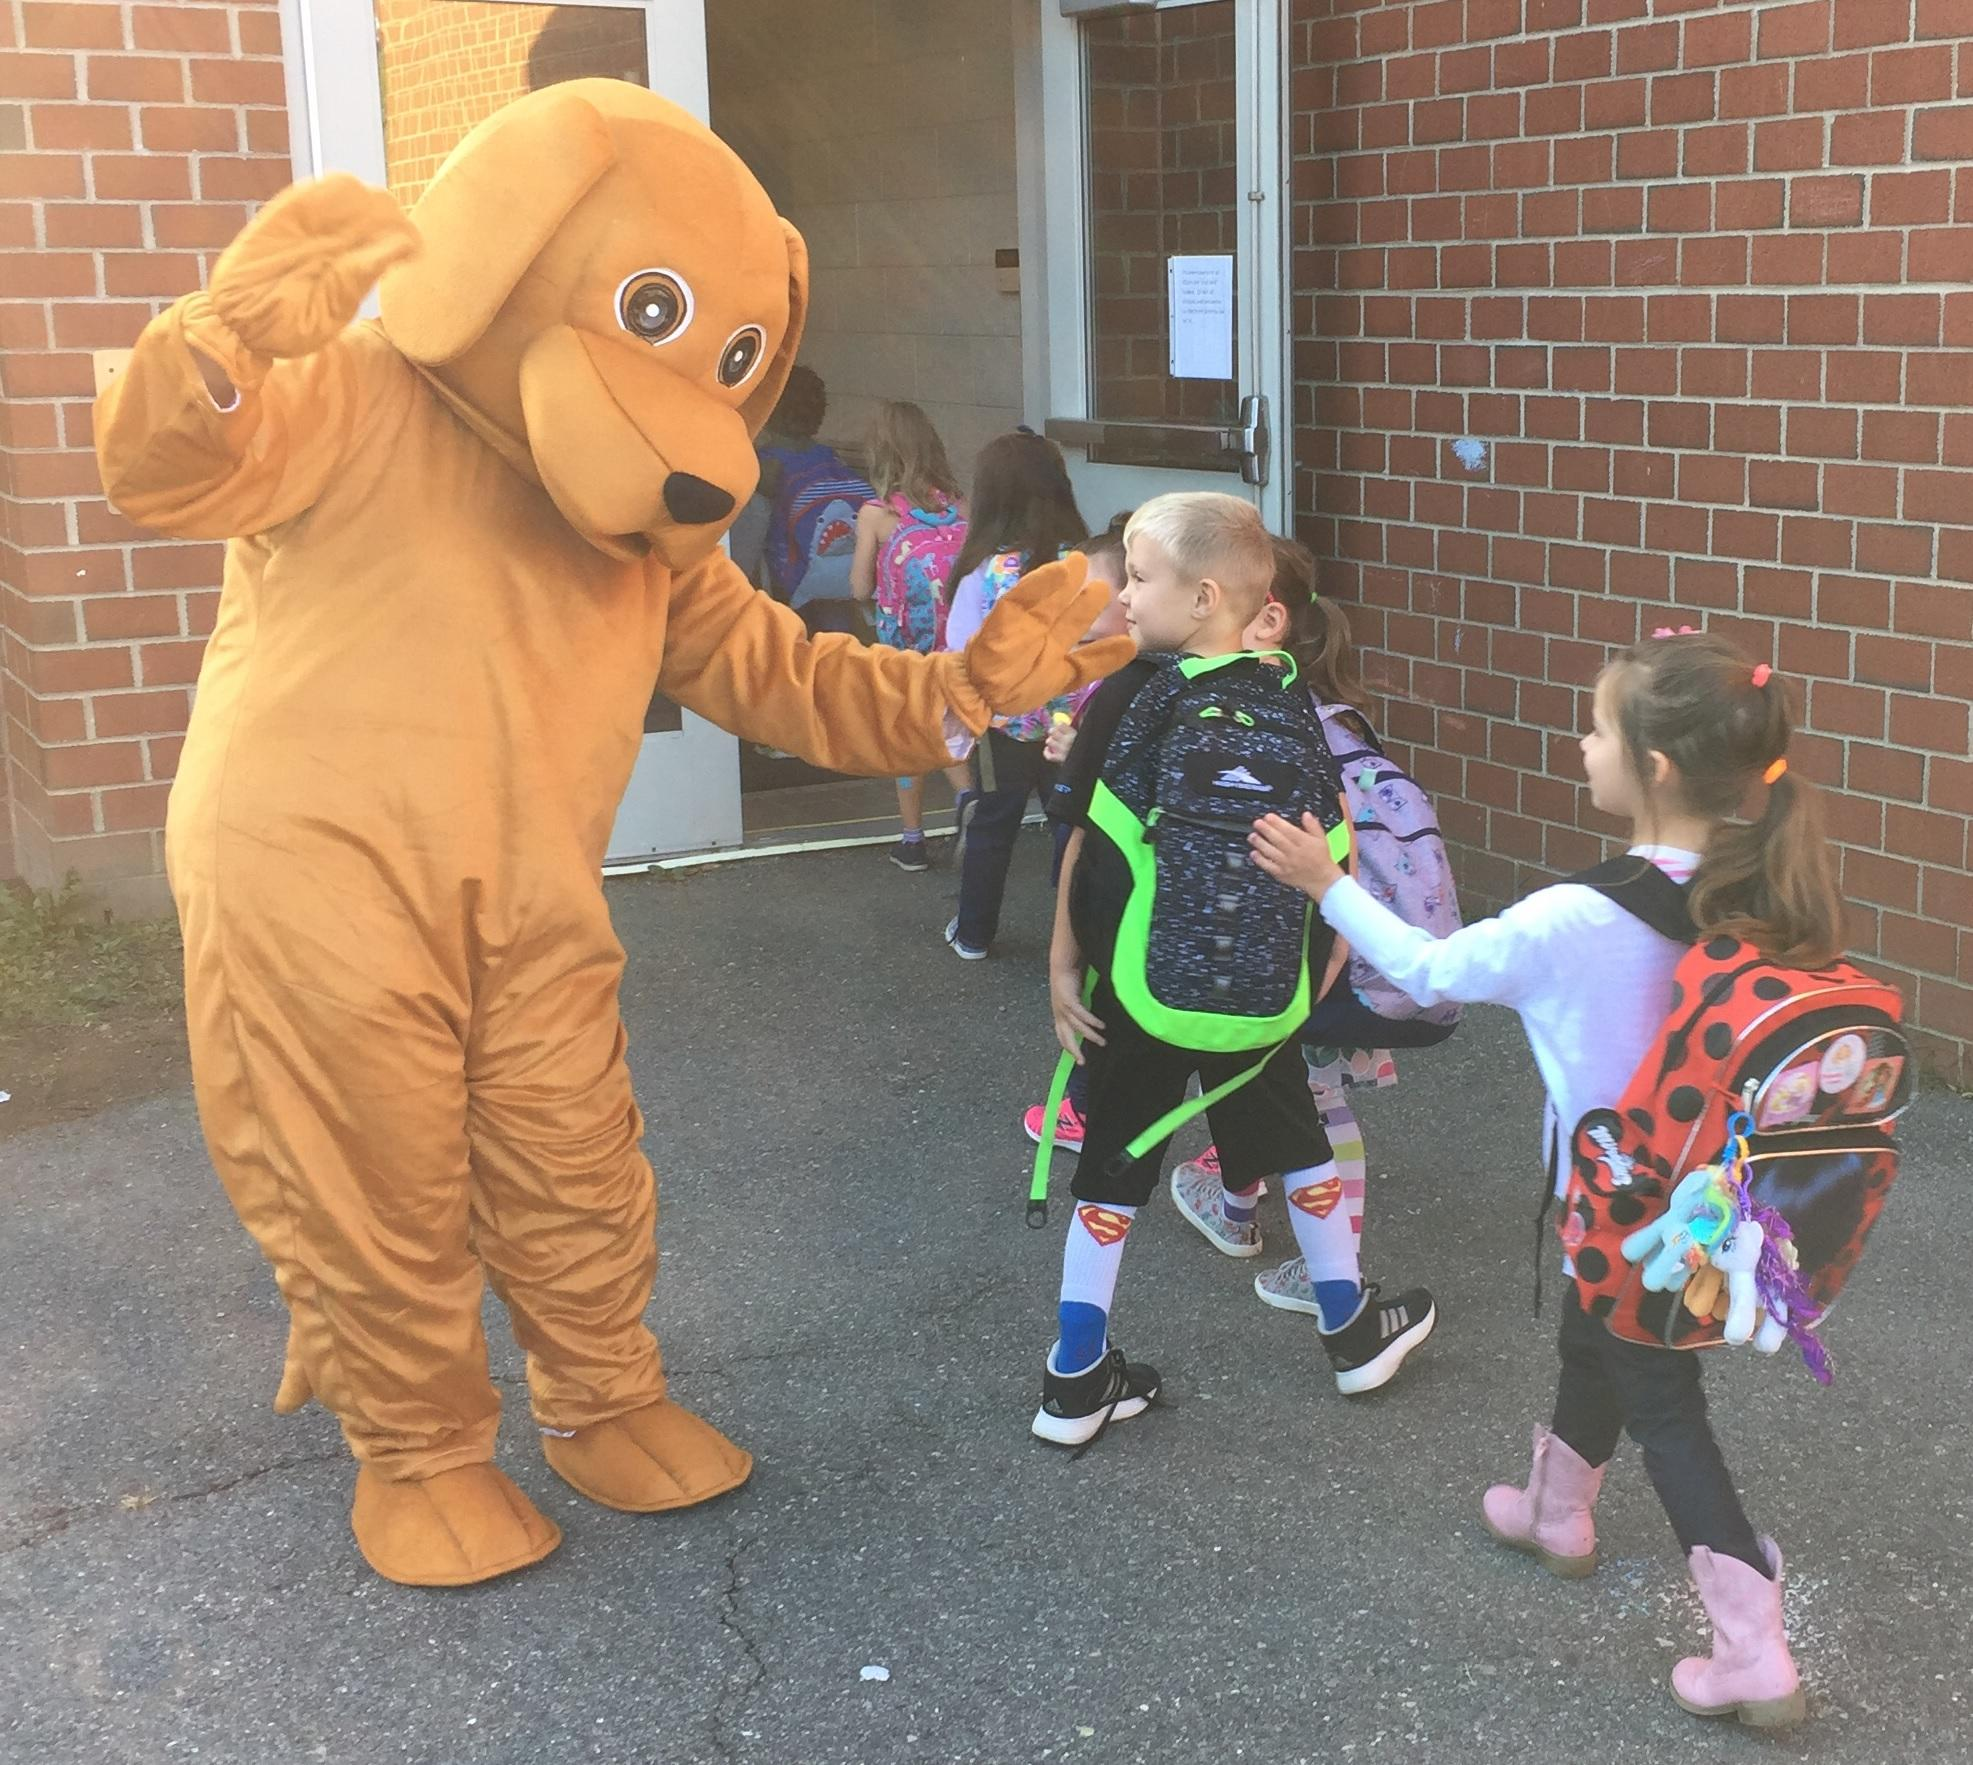 Goldie, our school mascot, greeting students with a high five as they enter the school building.